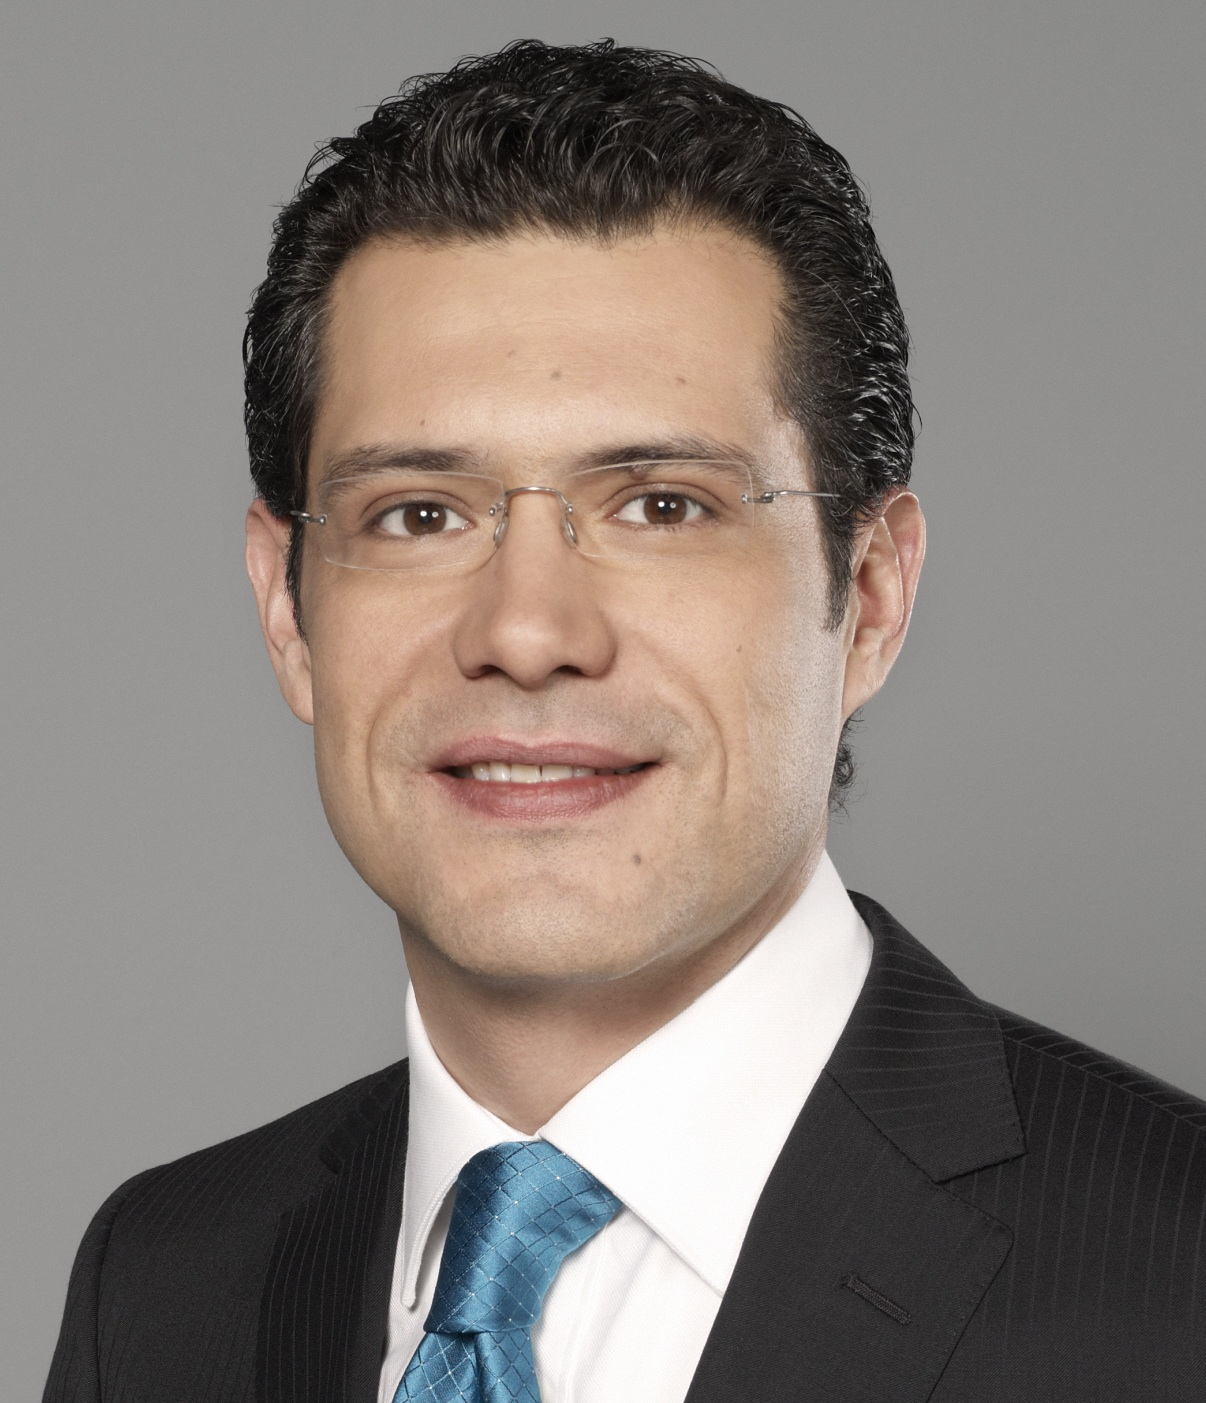 """""""México Opina"""" is CNN en Español's newest addition to its programming. Mario González will host the show which debuts next Sunday, May 15. - mario_gonzalez_cnn"""